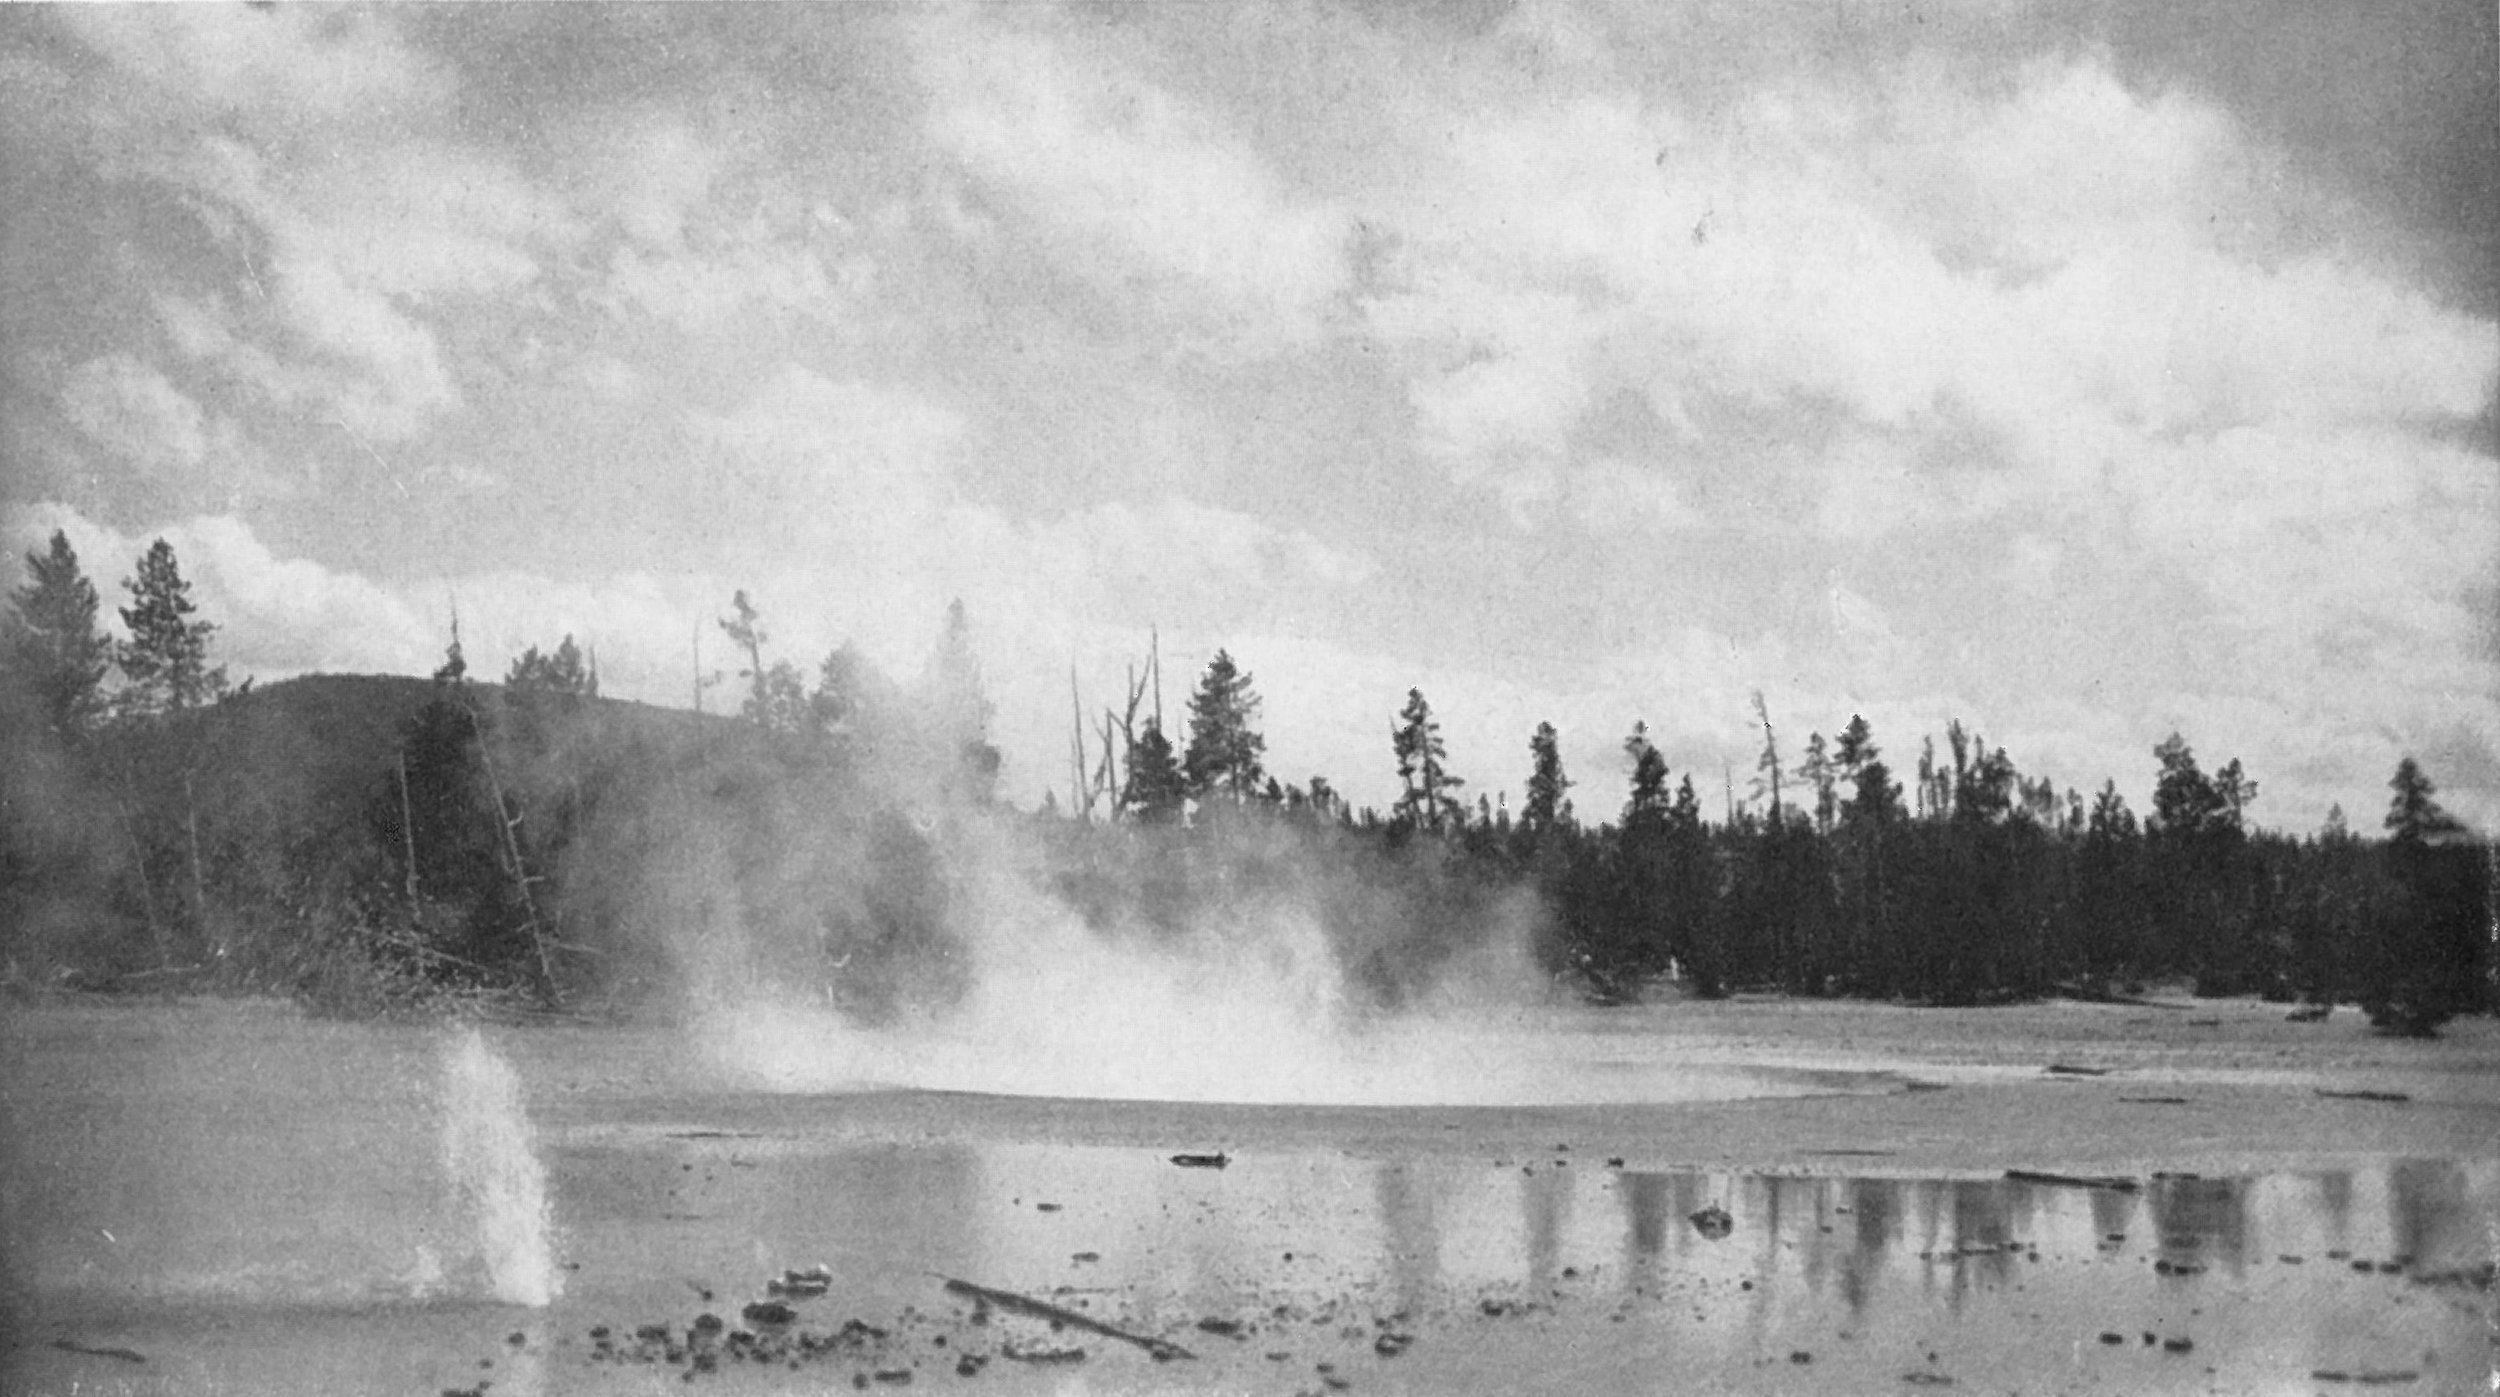 Cinder Pool and 'Small Perpetual Spouter' - 1925-1935?